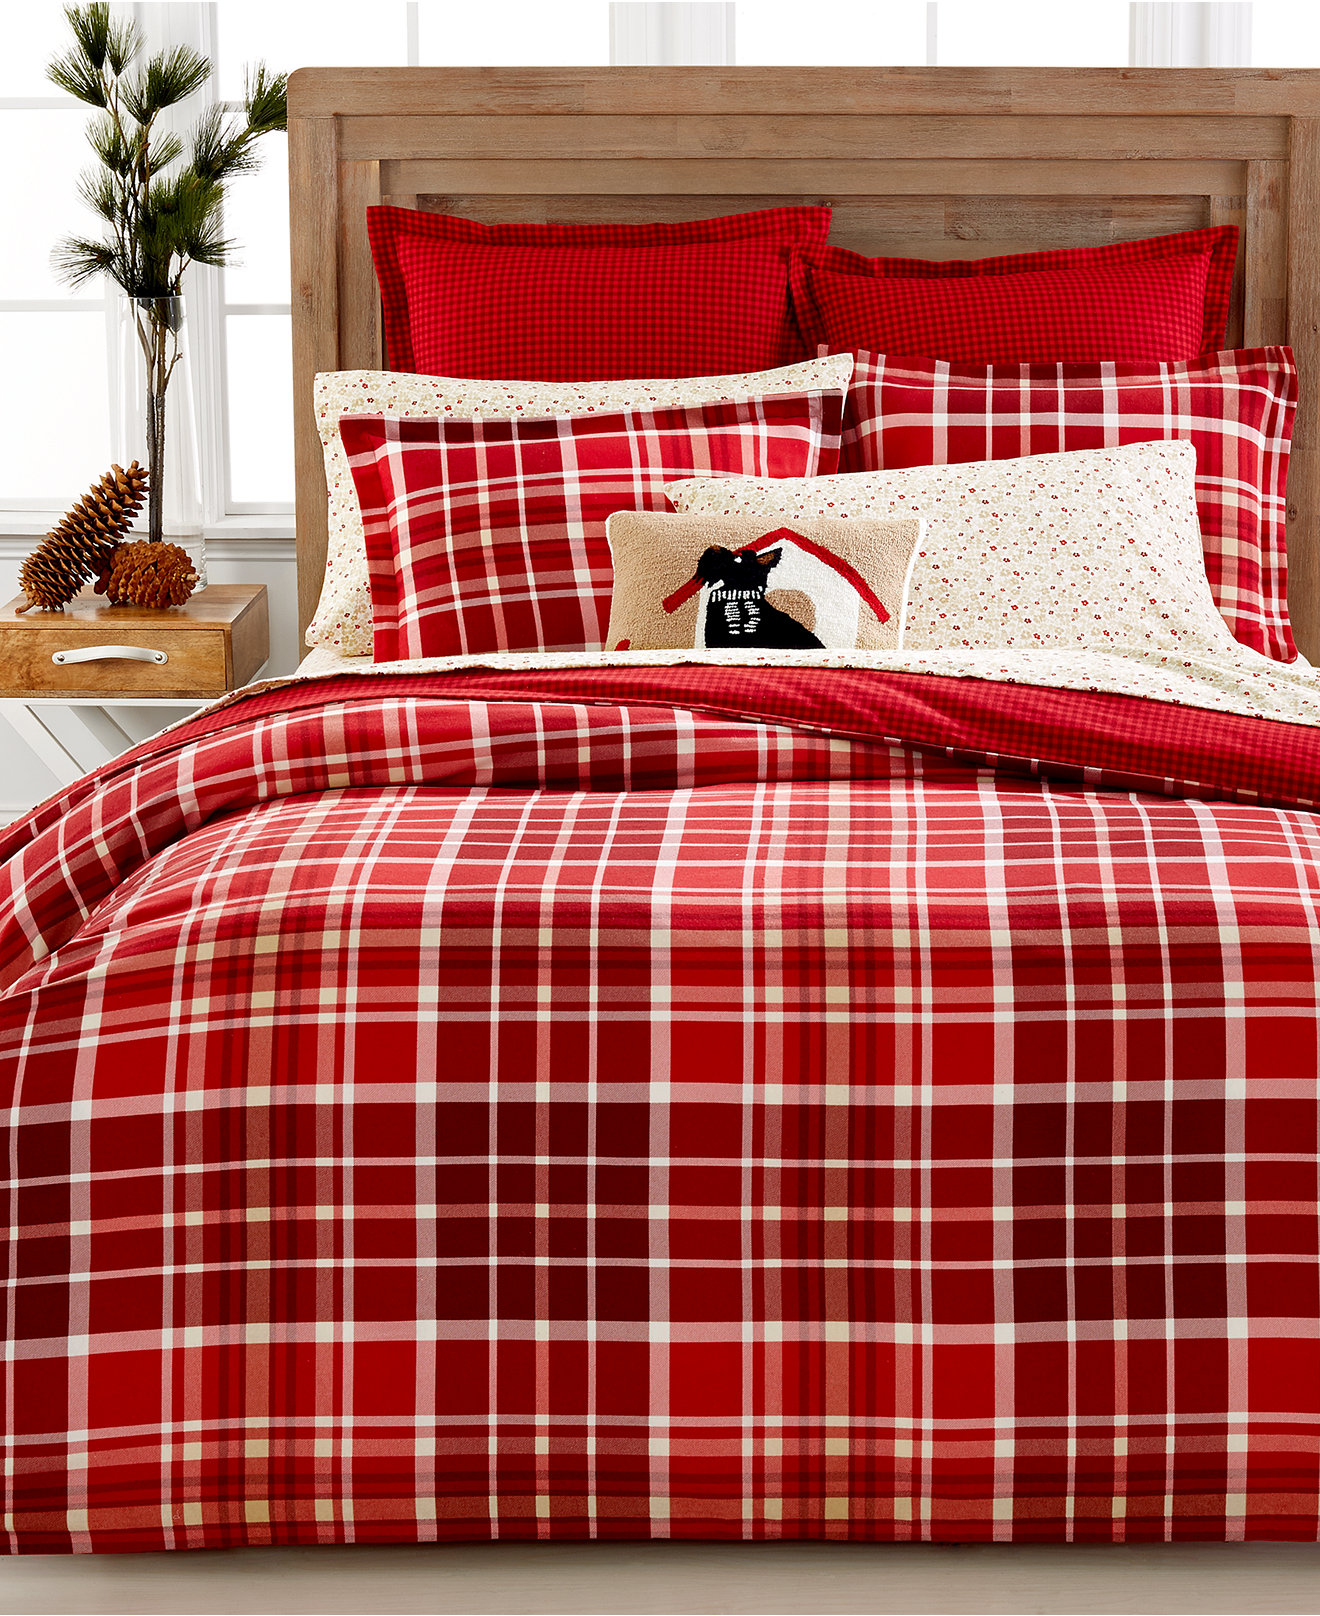 Macys Flannel Sheets with Unique and Beautiful Colors